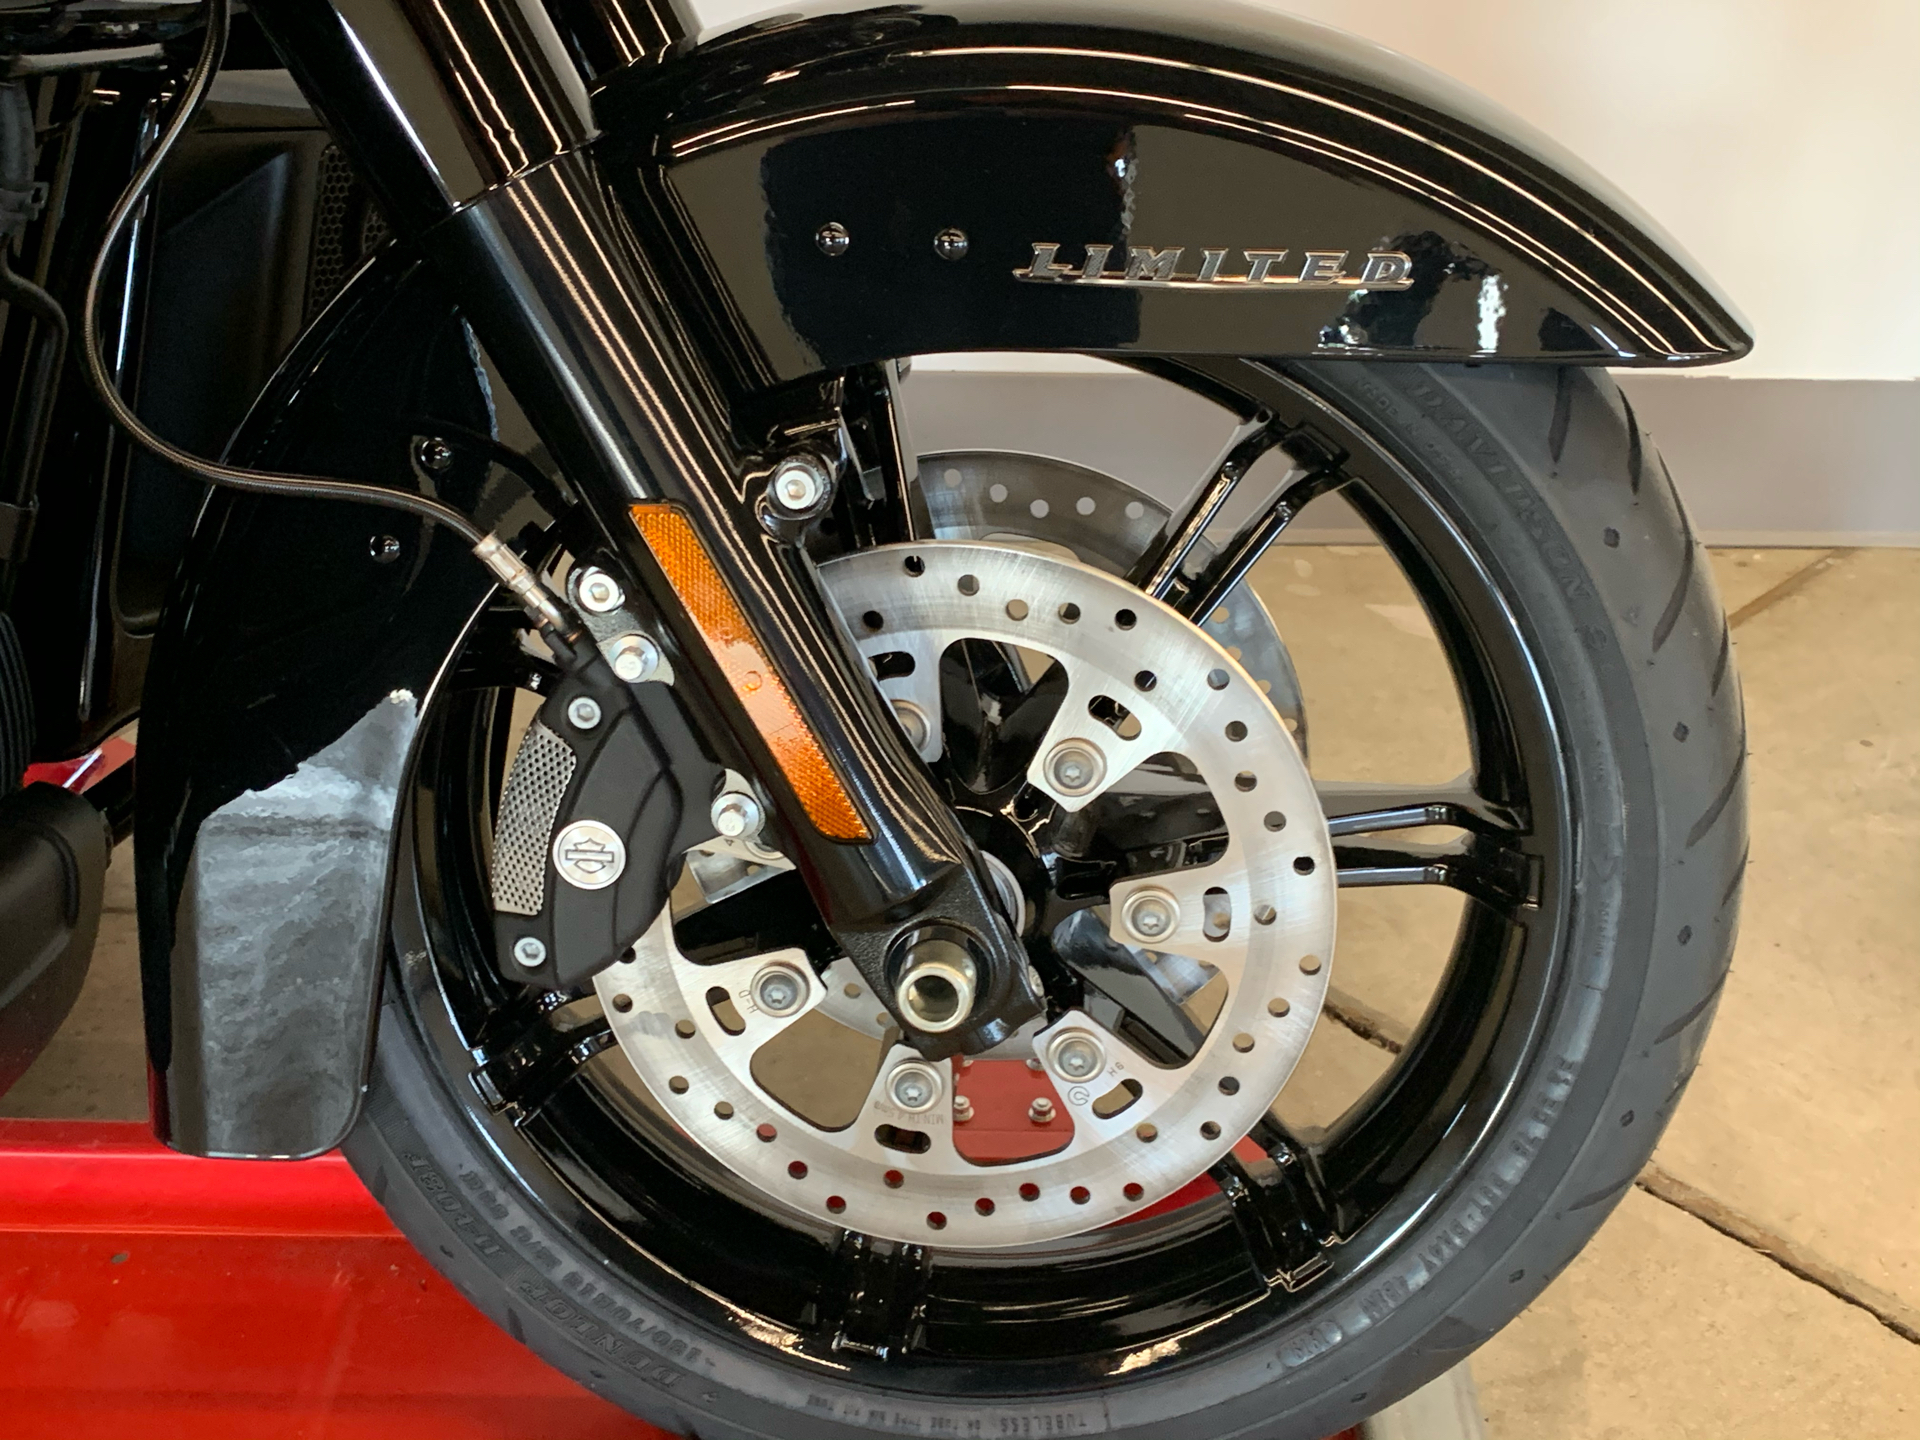 2021 Harley-Davidson ULTRA LIMITED in Flint, Michigan - Photo 9